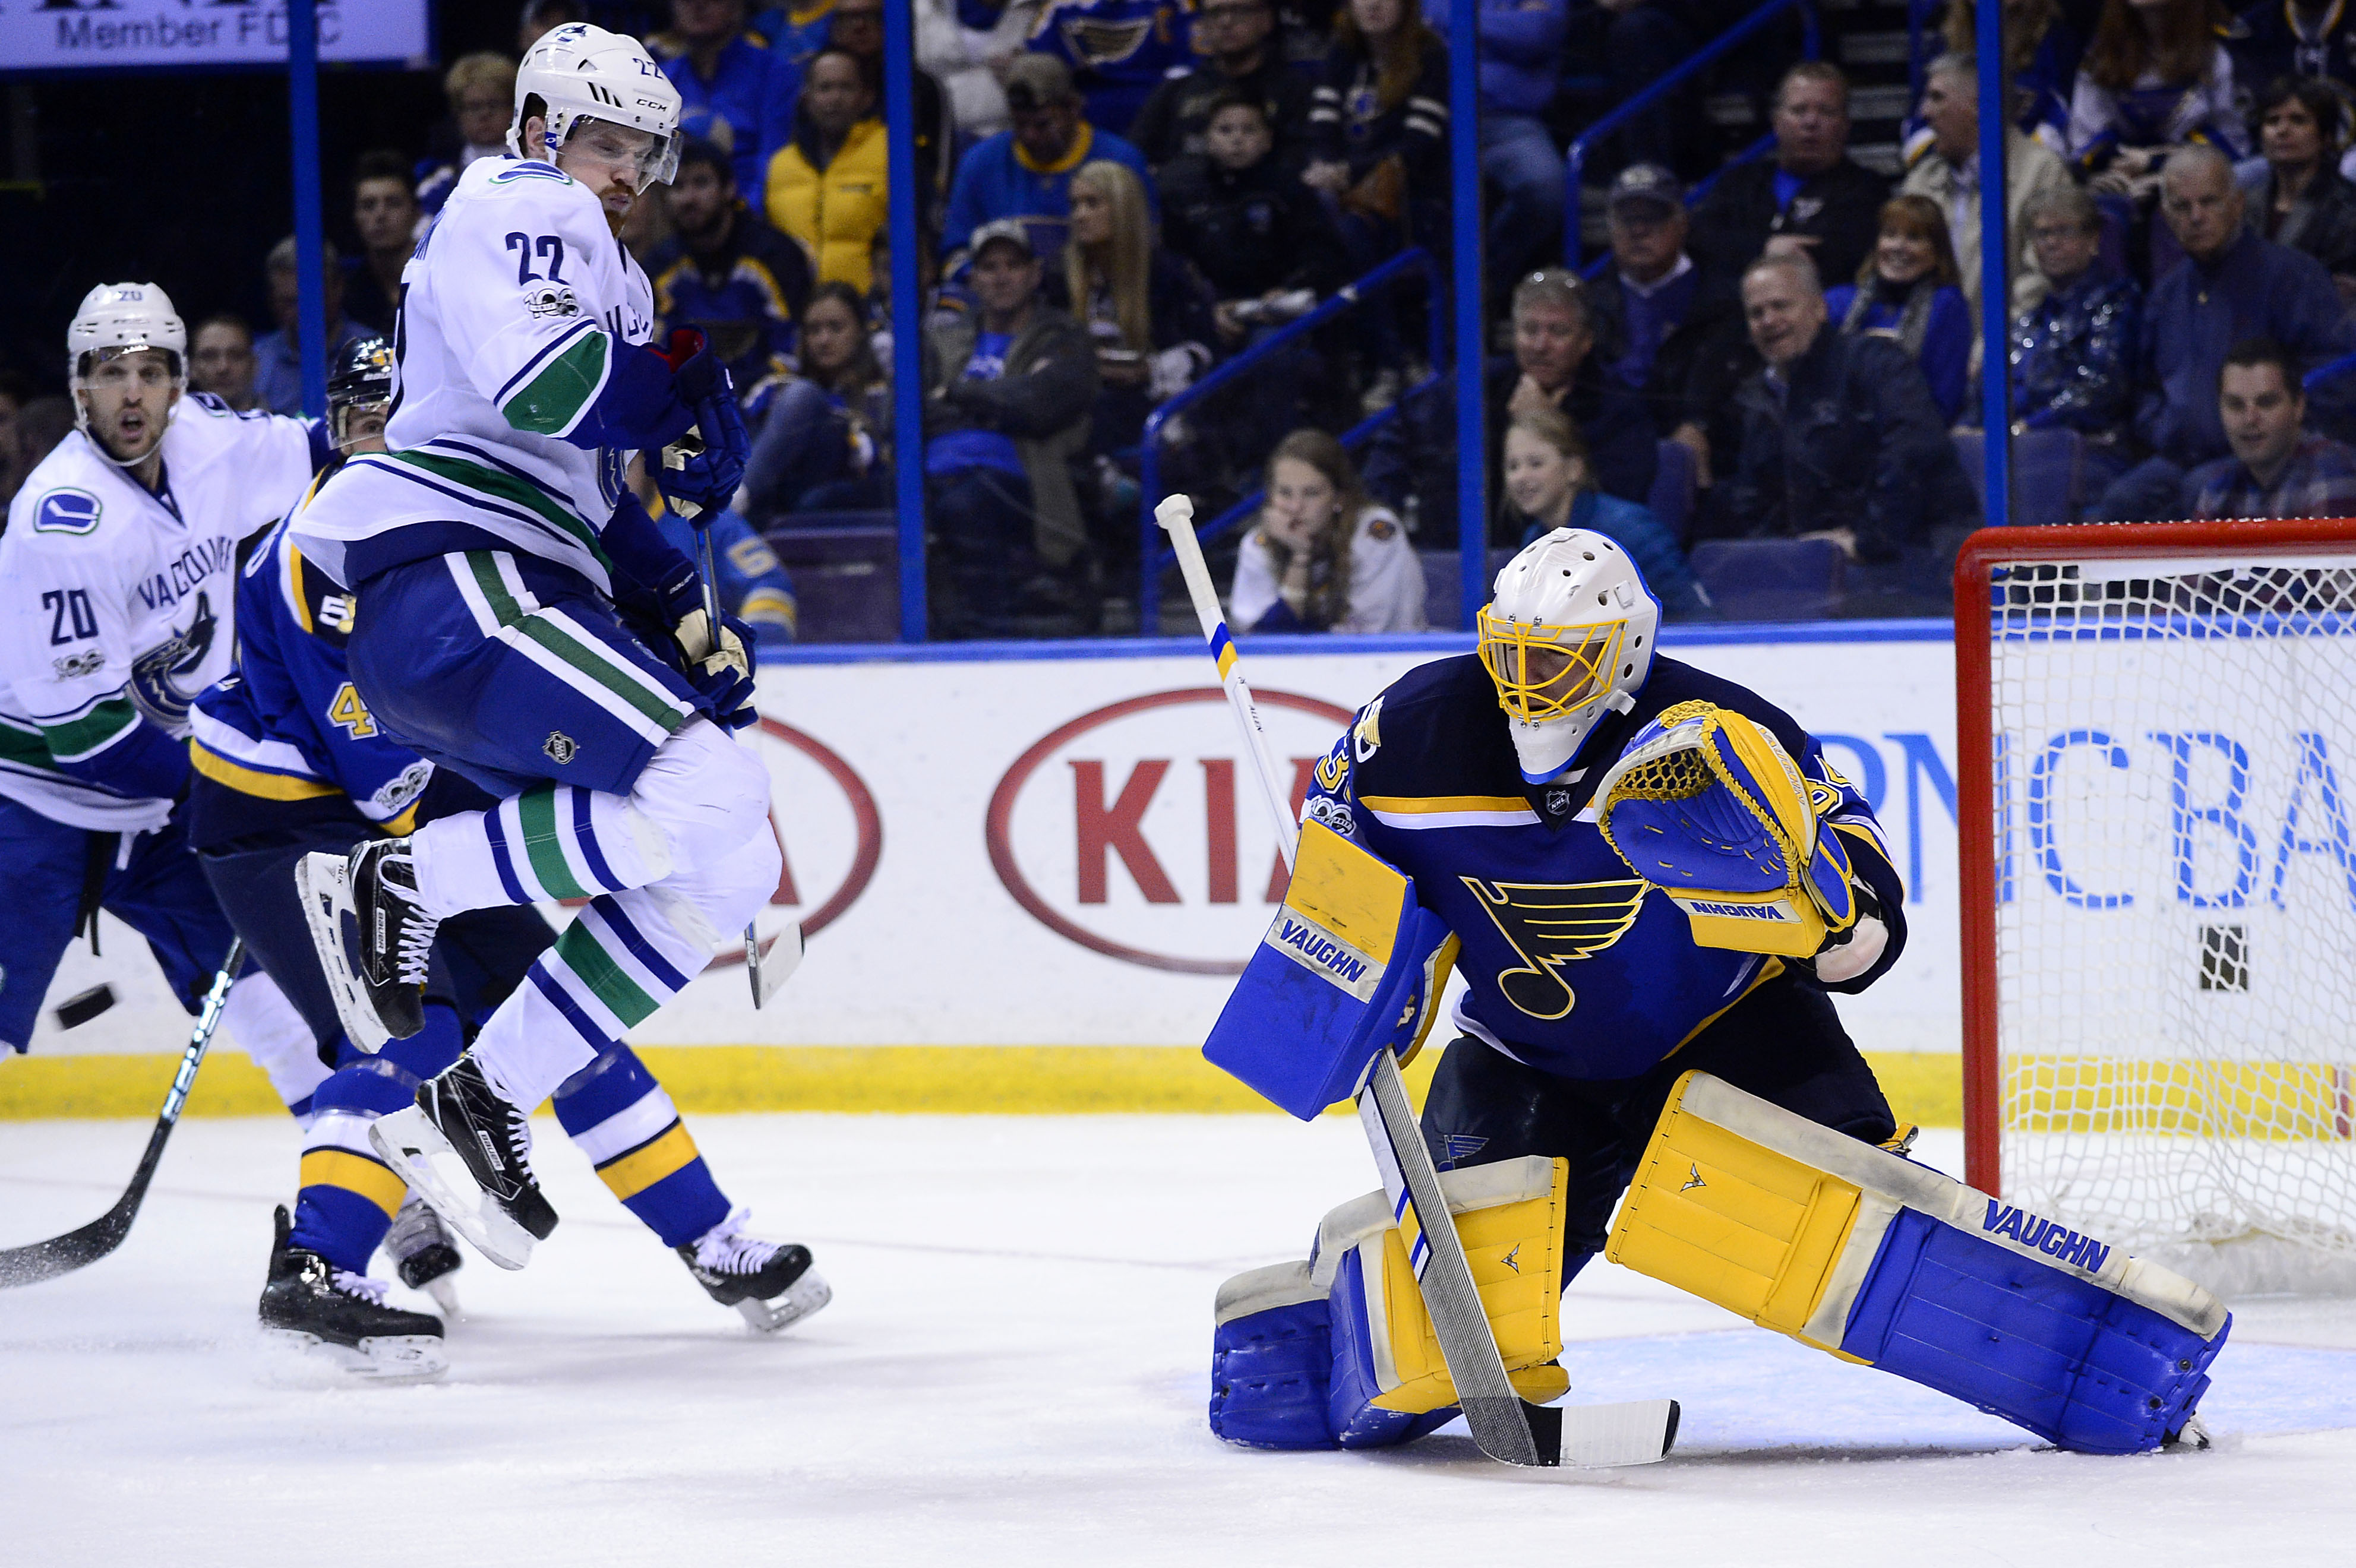 9967171-nhl-vancouver-canucks-at-st.-louis-blues